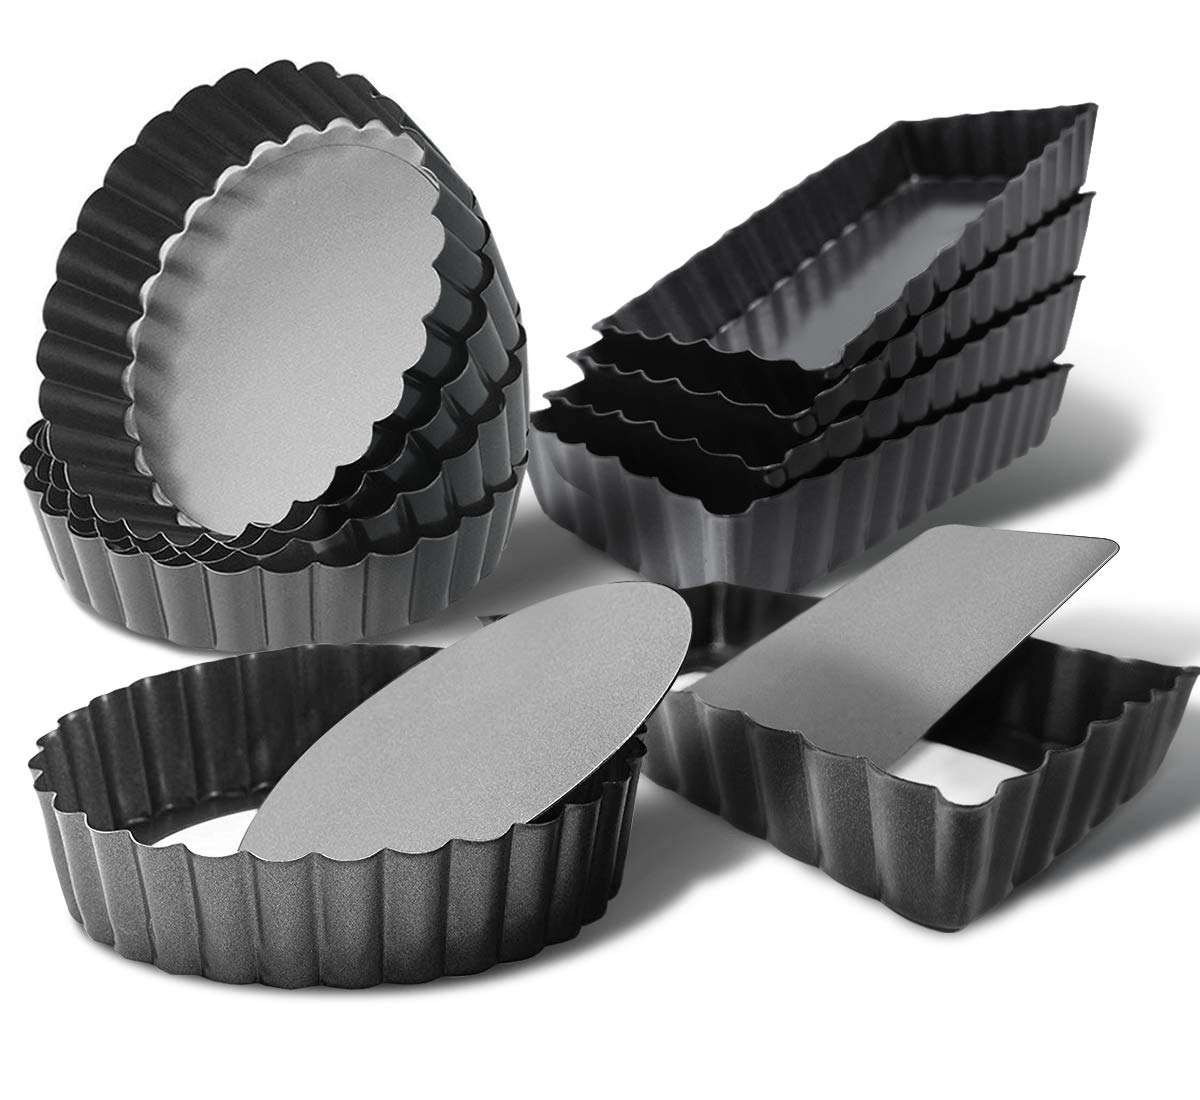 Tart Quiche Pan Set,Nonstick Removable Loose Bottom Mini Heavy Duty Fluted Pie Cheesecake Molds